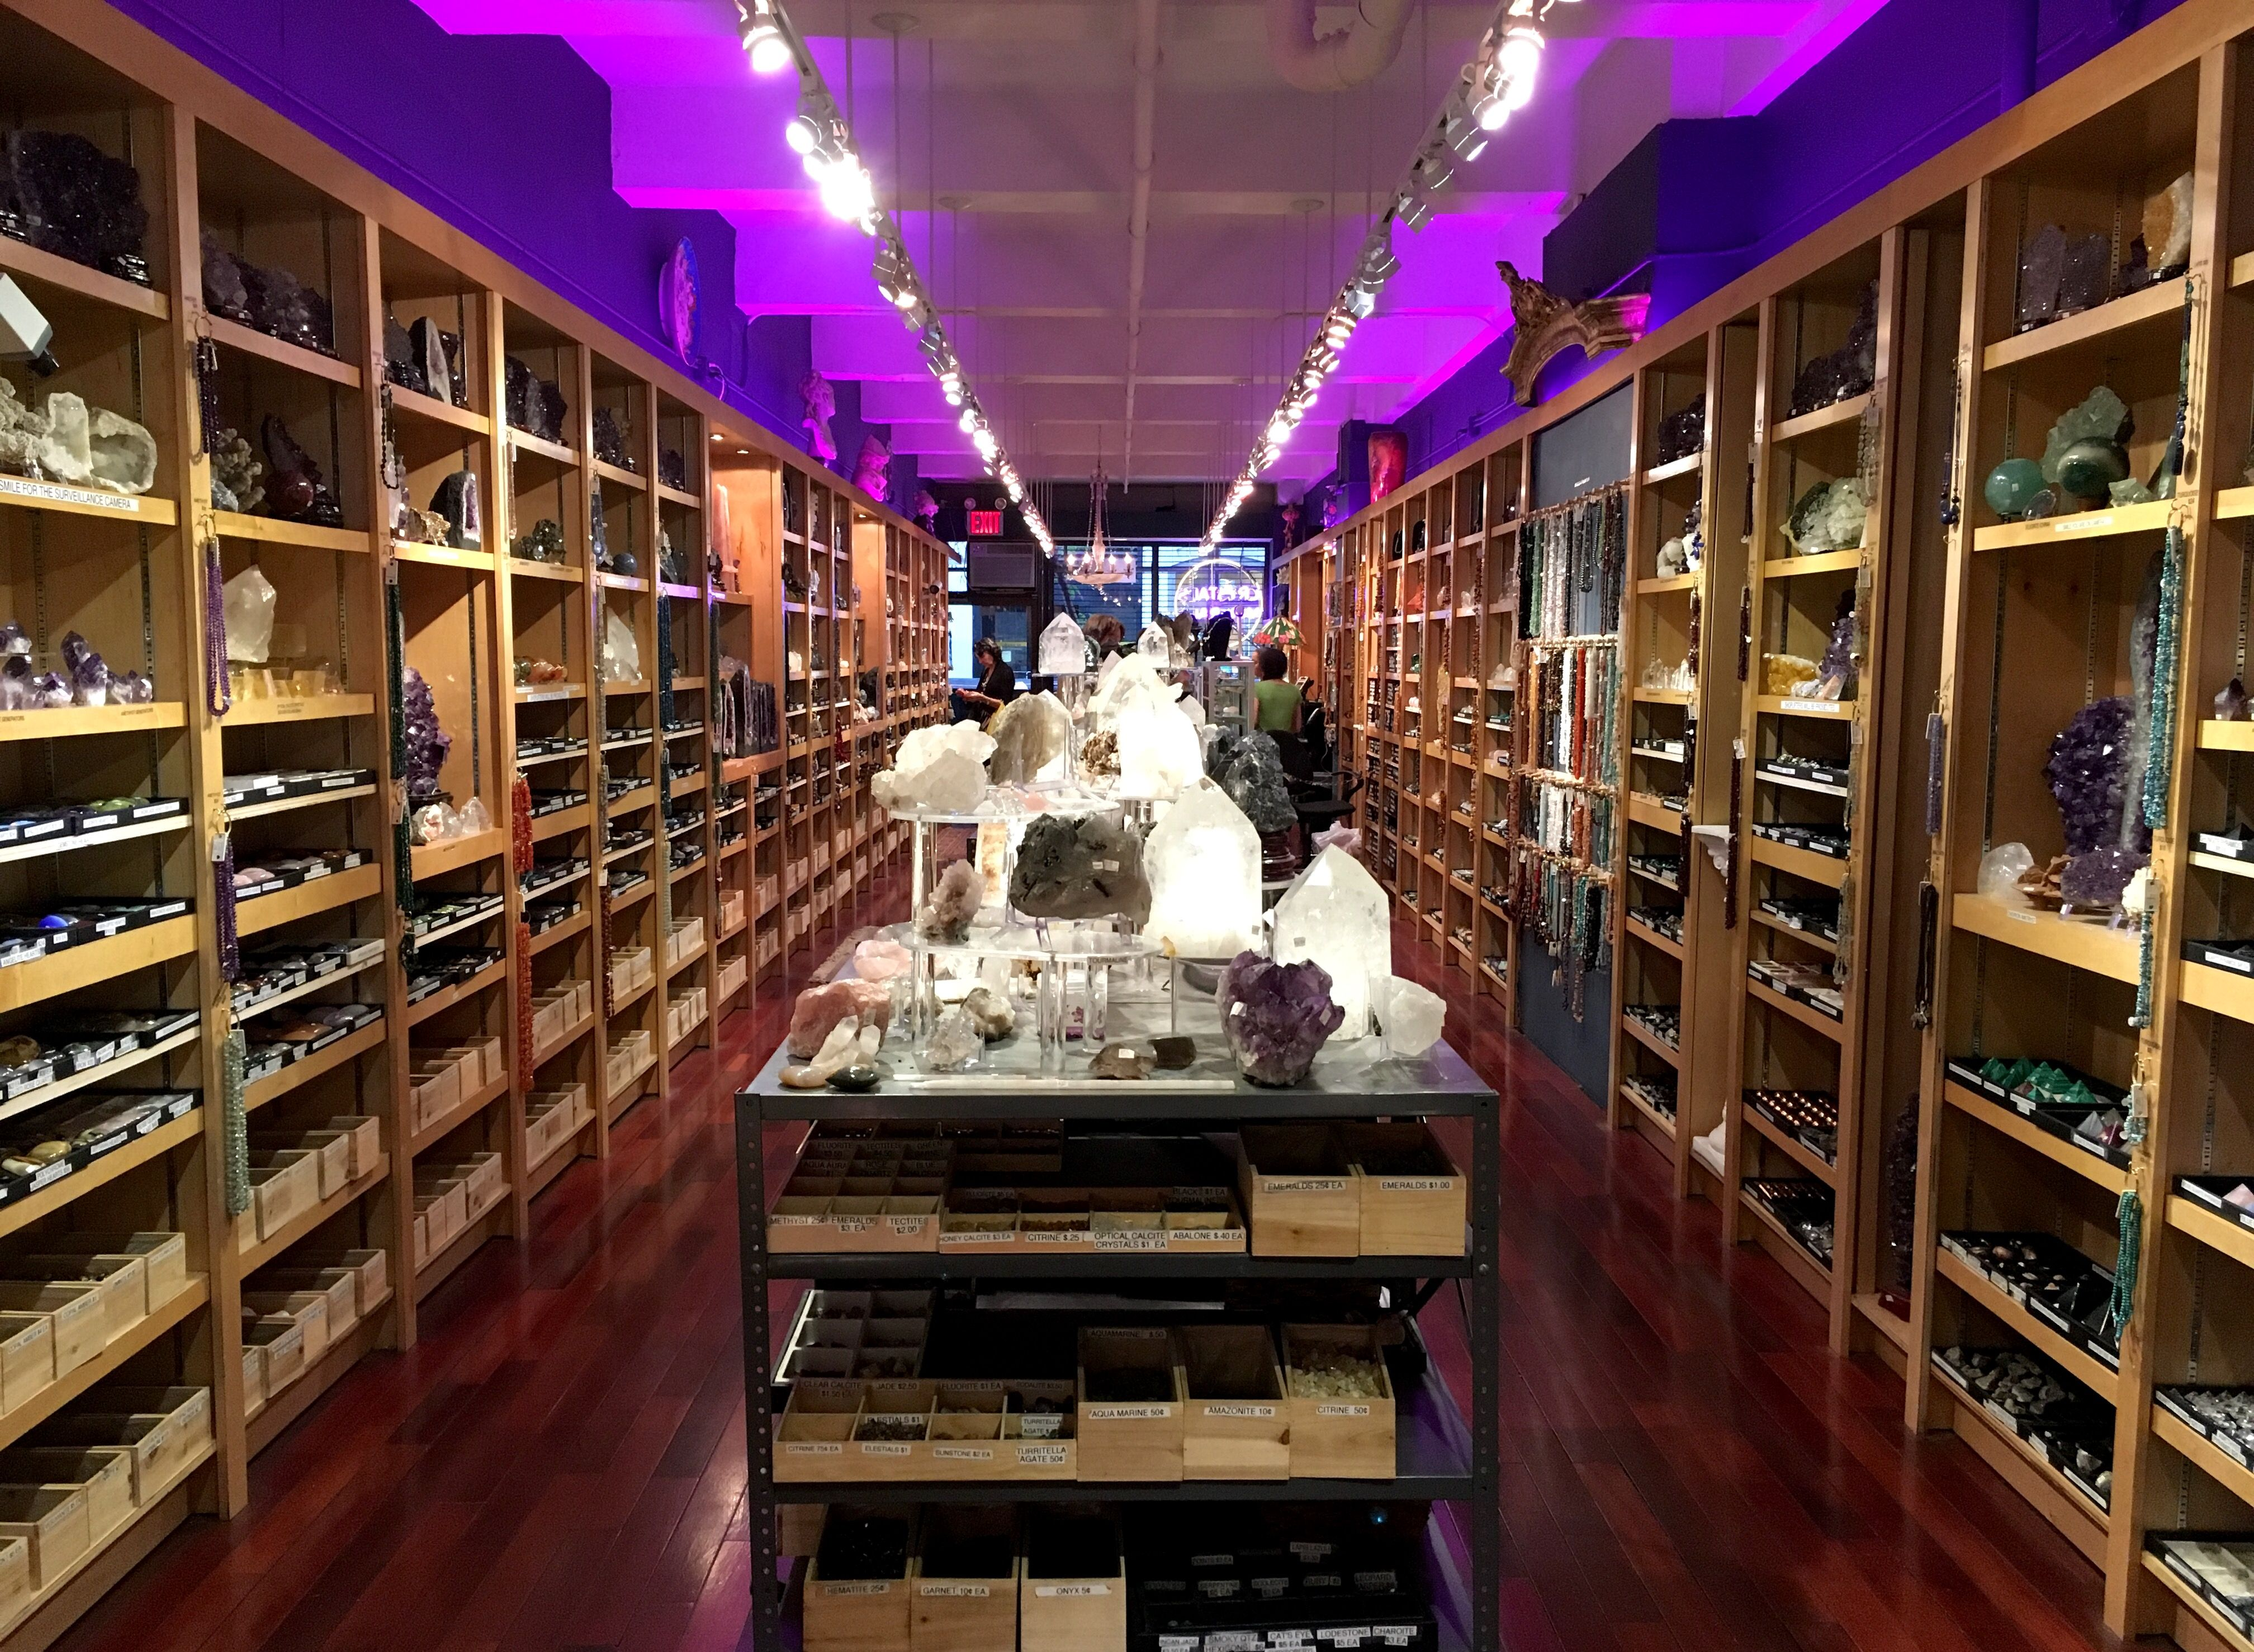 Best CRYSTALS SHOP in NYC! | CRYSTAL SHOPS in NYC | Crystal shop